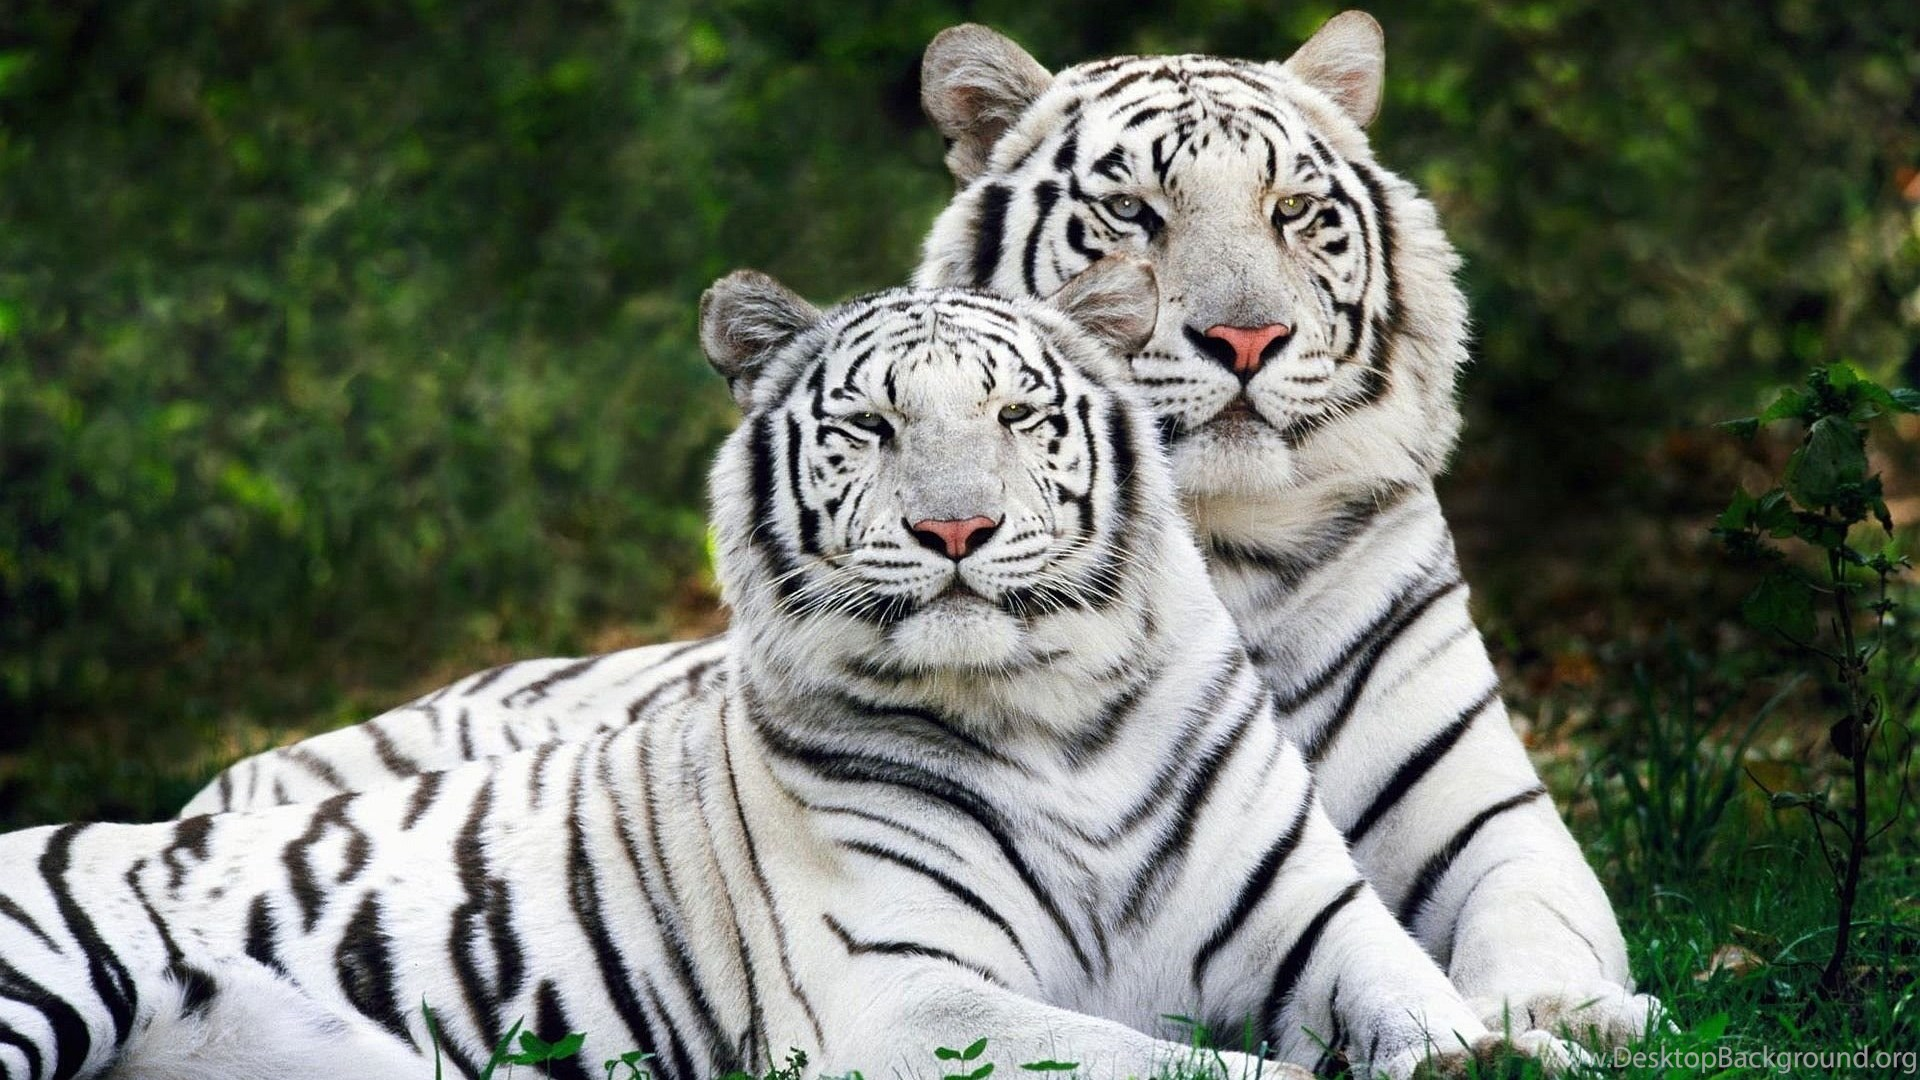 White Tiger Wallpapers Pc 2269 Hd Wallpapers Site Desktop Background